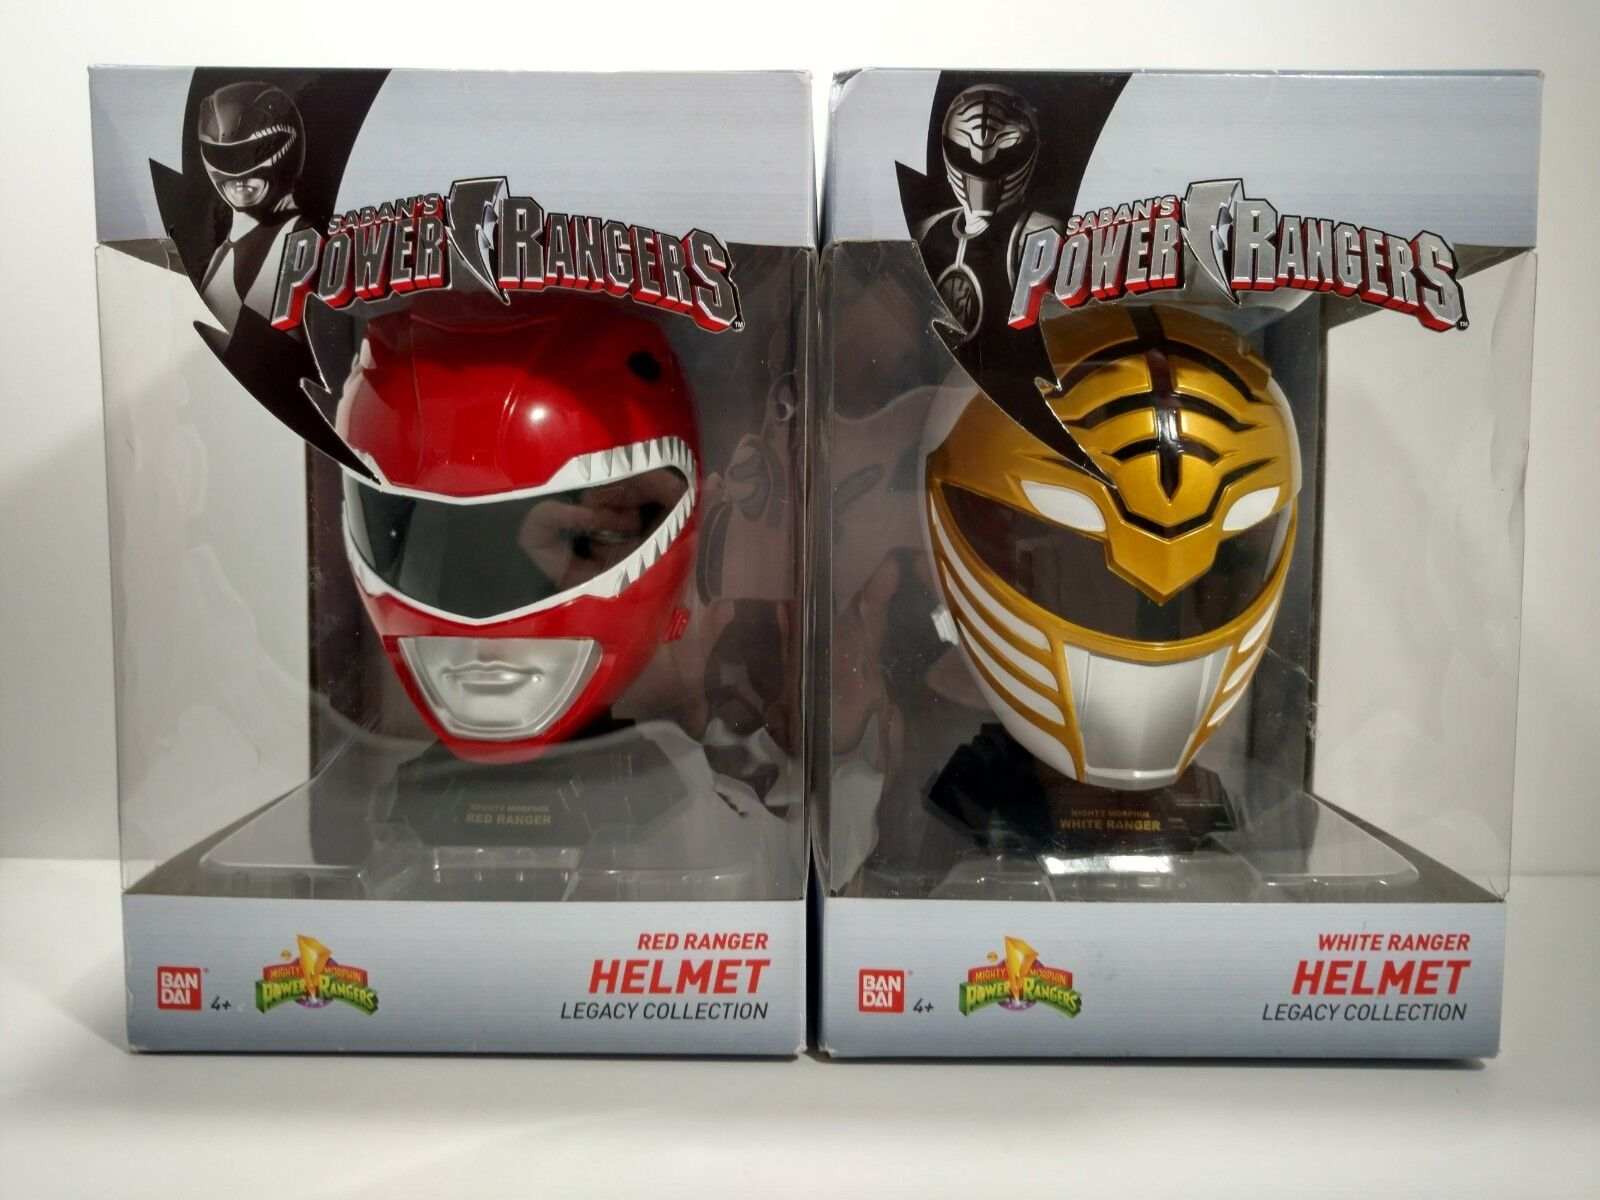 NIB Power Rangers Legacy Collection Red And White Ranger Helmets, 2 Helmets